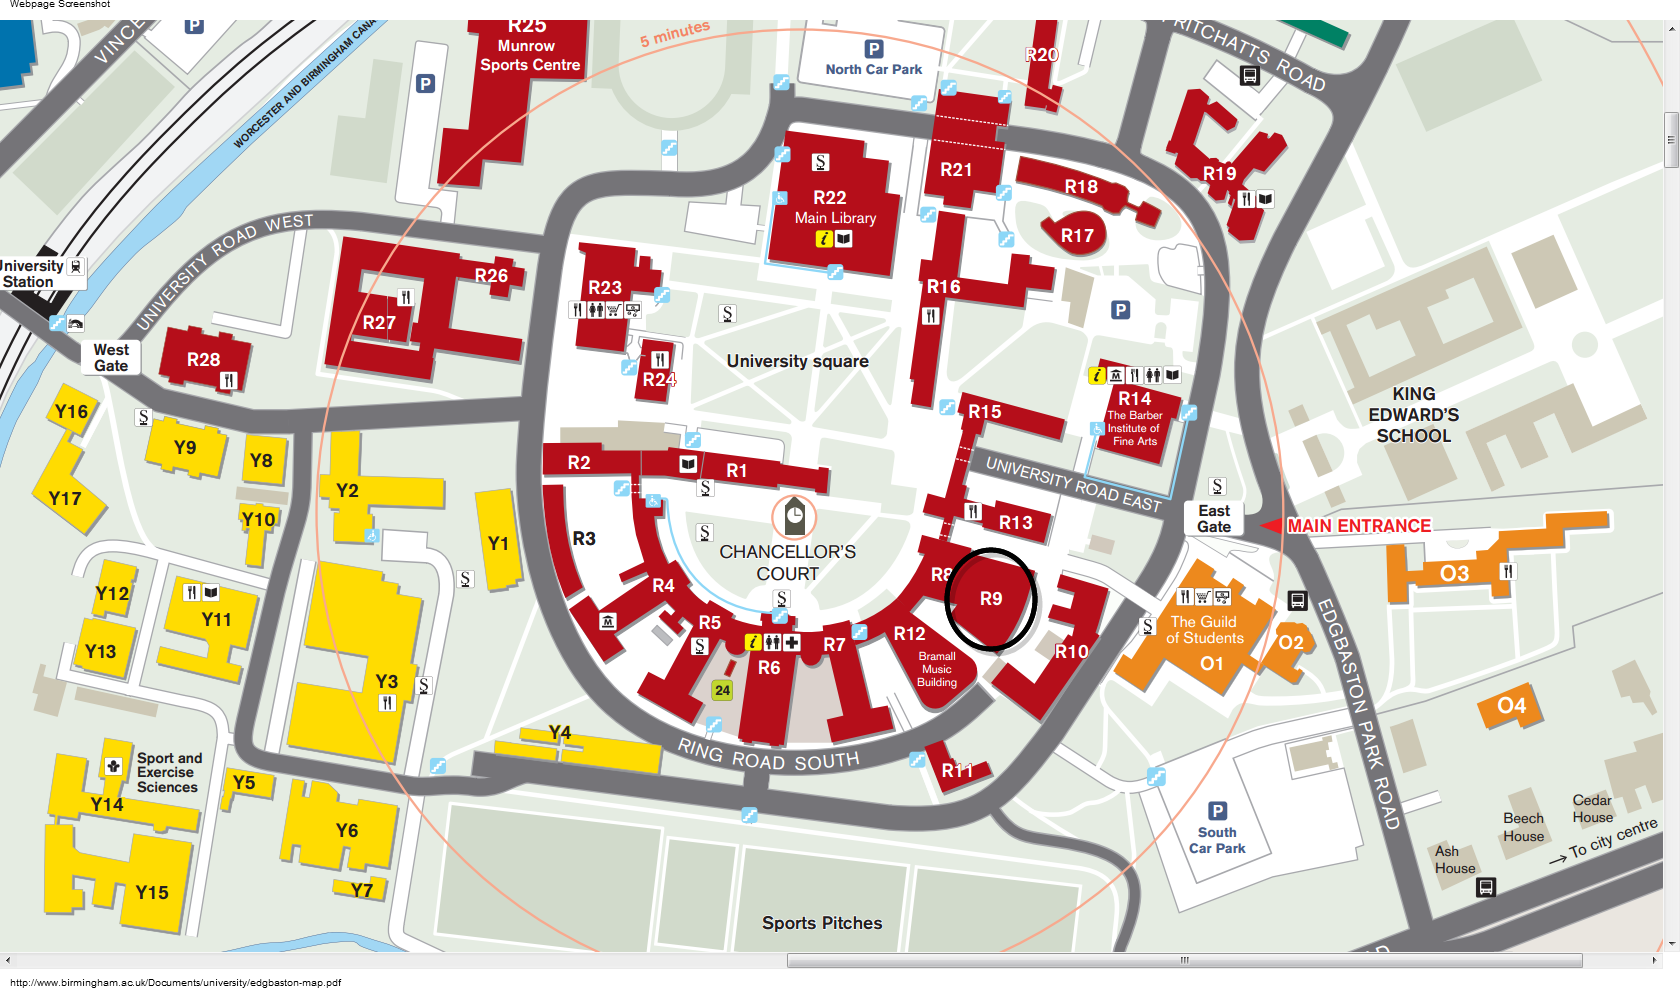 university campus map - Google Search | Maps | Pinterest | Campus ...